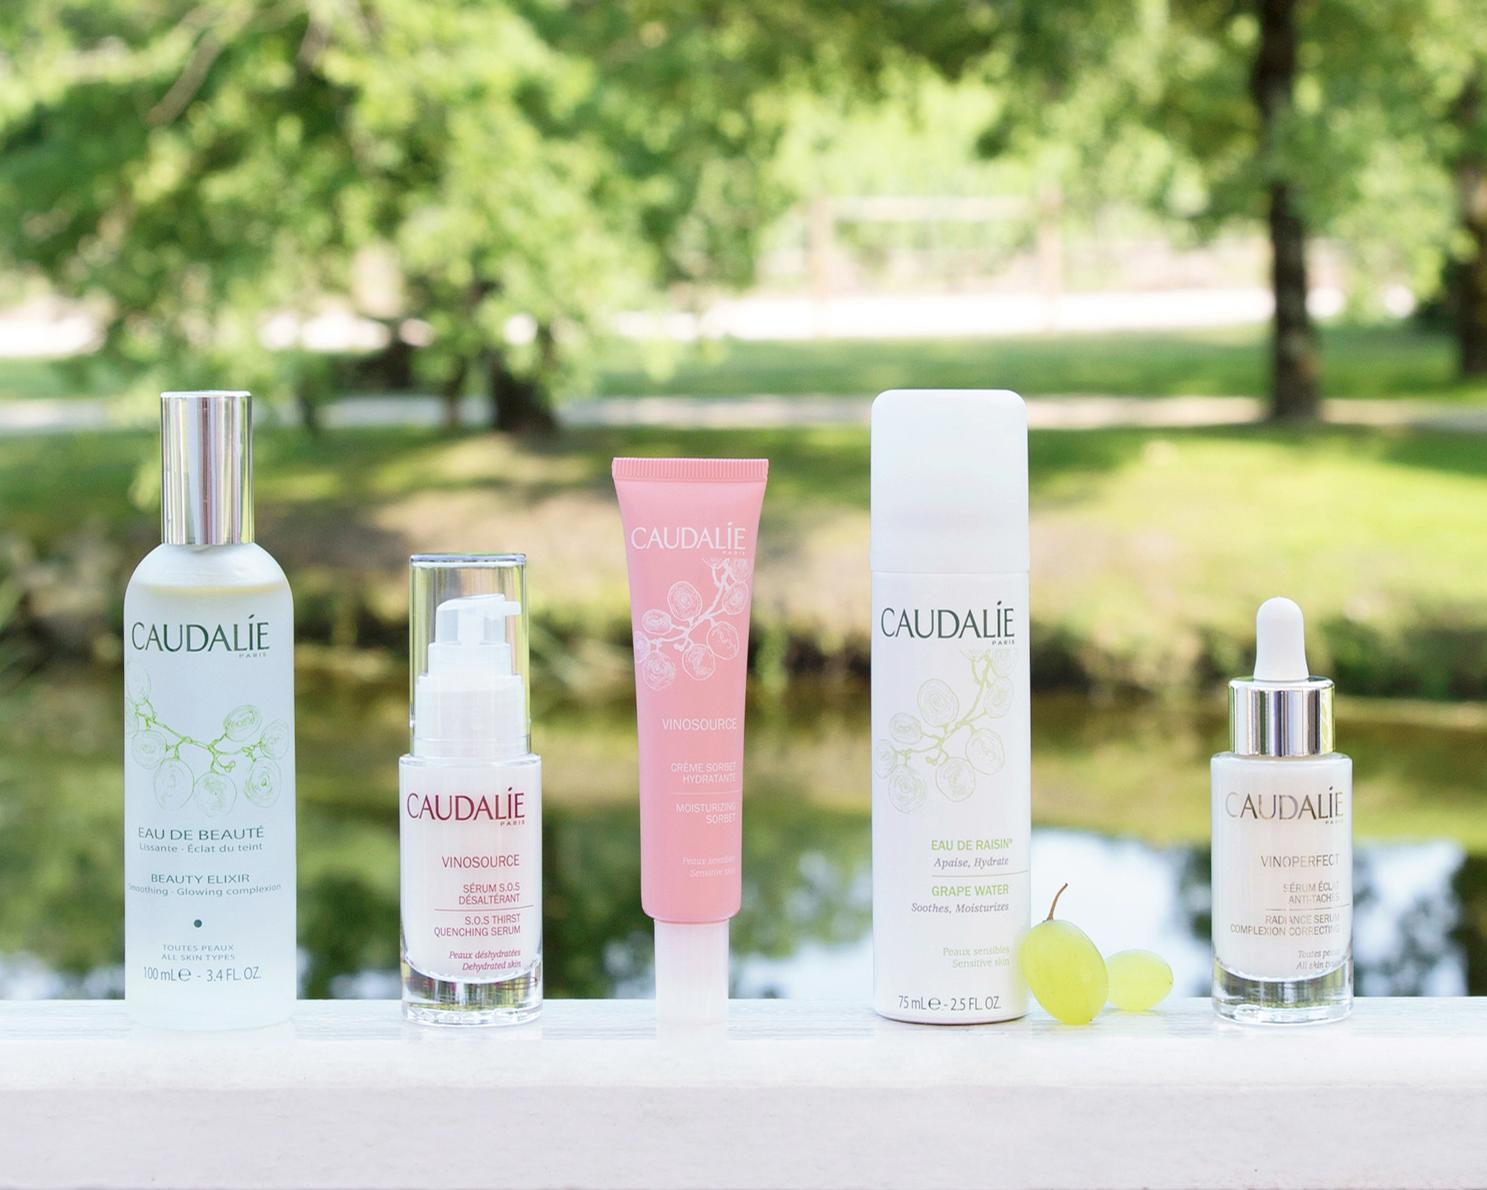 Caudalie launches at the Clearing Spa at the Cornwall Hotel today